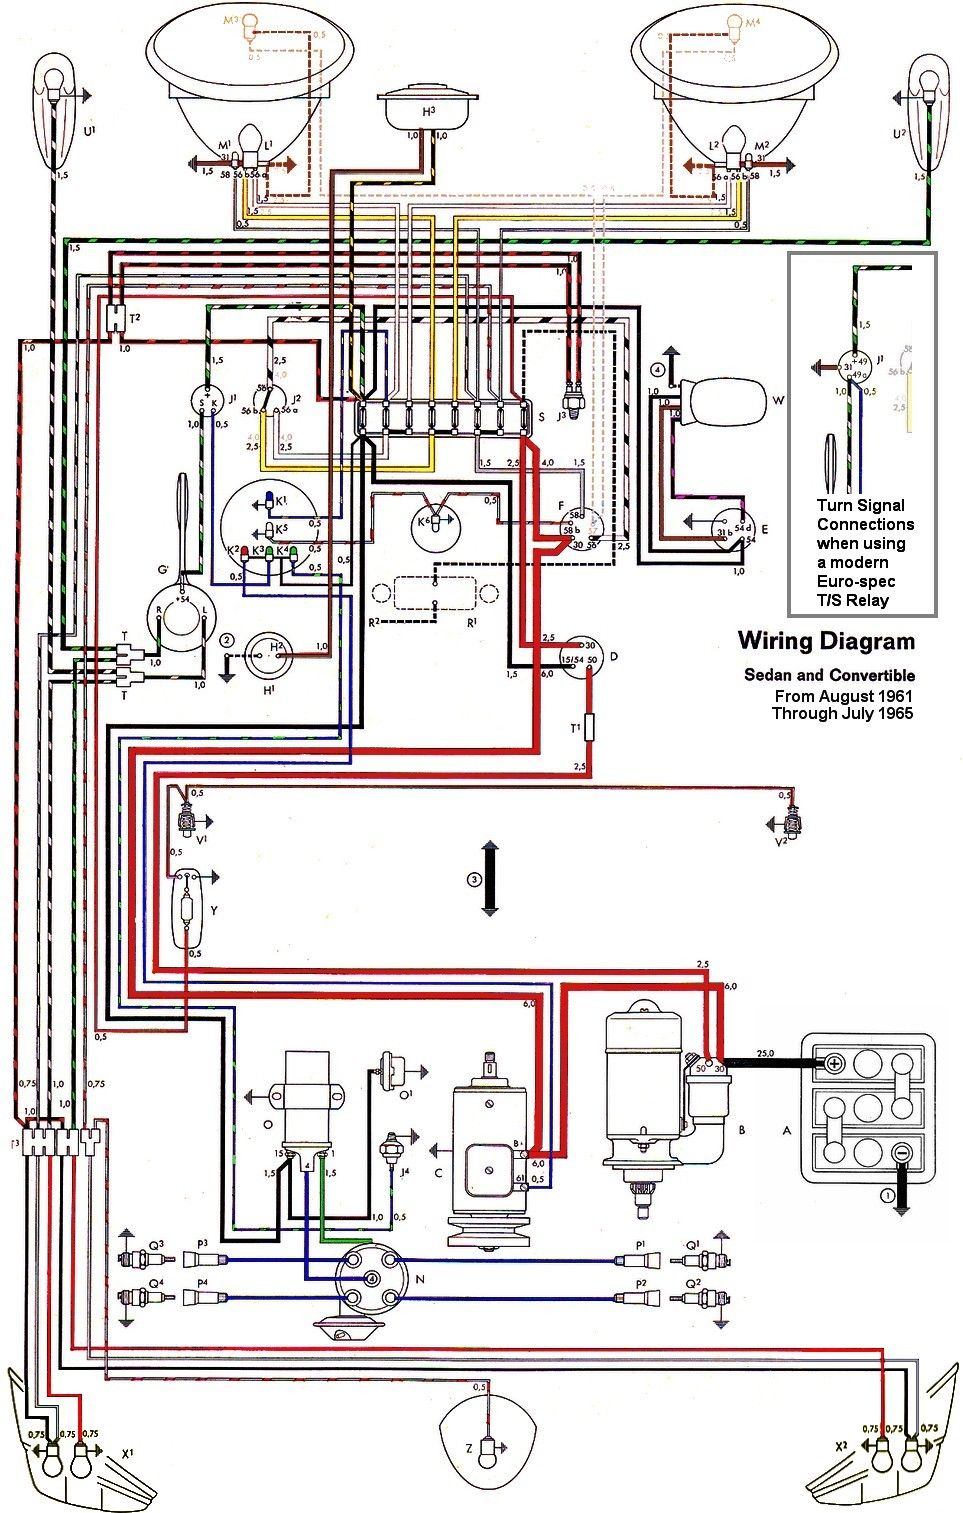 2235472c26e9b61112a110100d6ddea3 wiring diagram in color 1964 vw bug, beetle, convertible the vw thing wiring diagram at nearapp.co